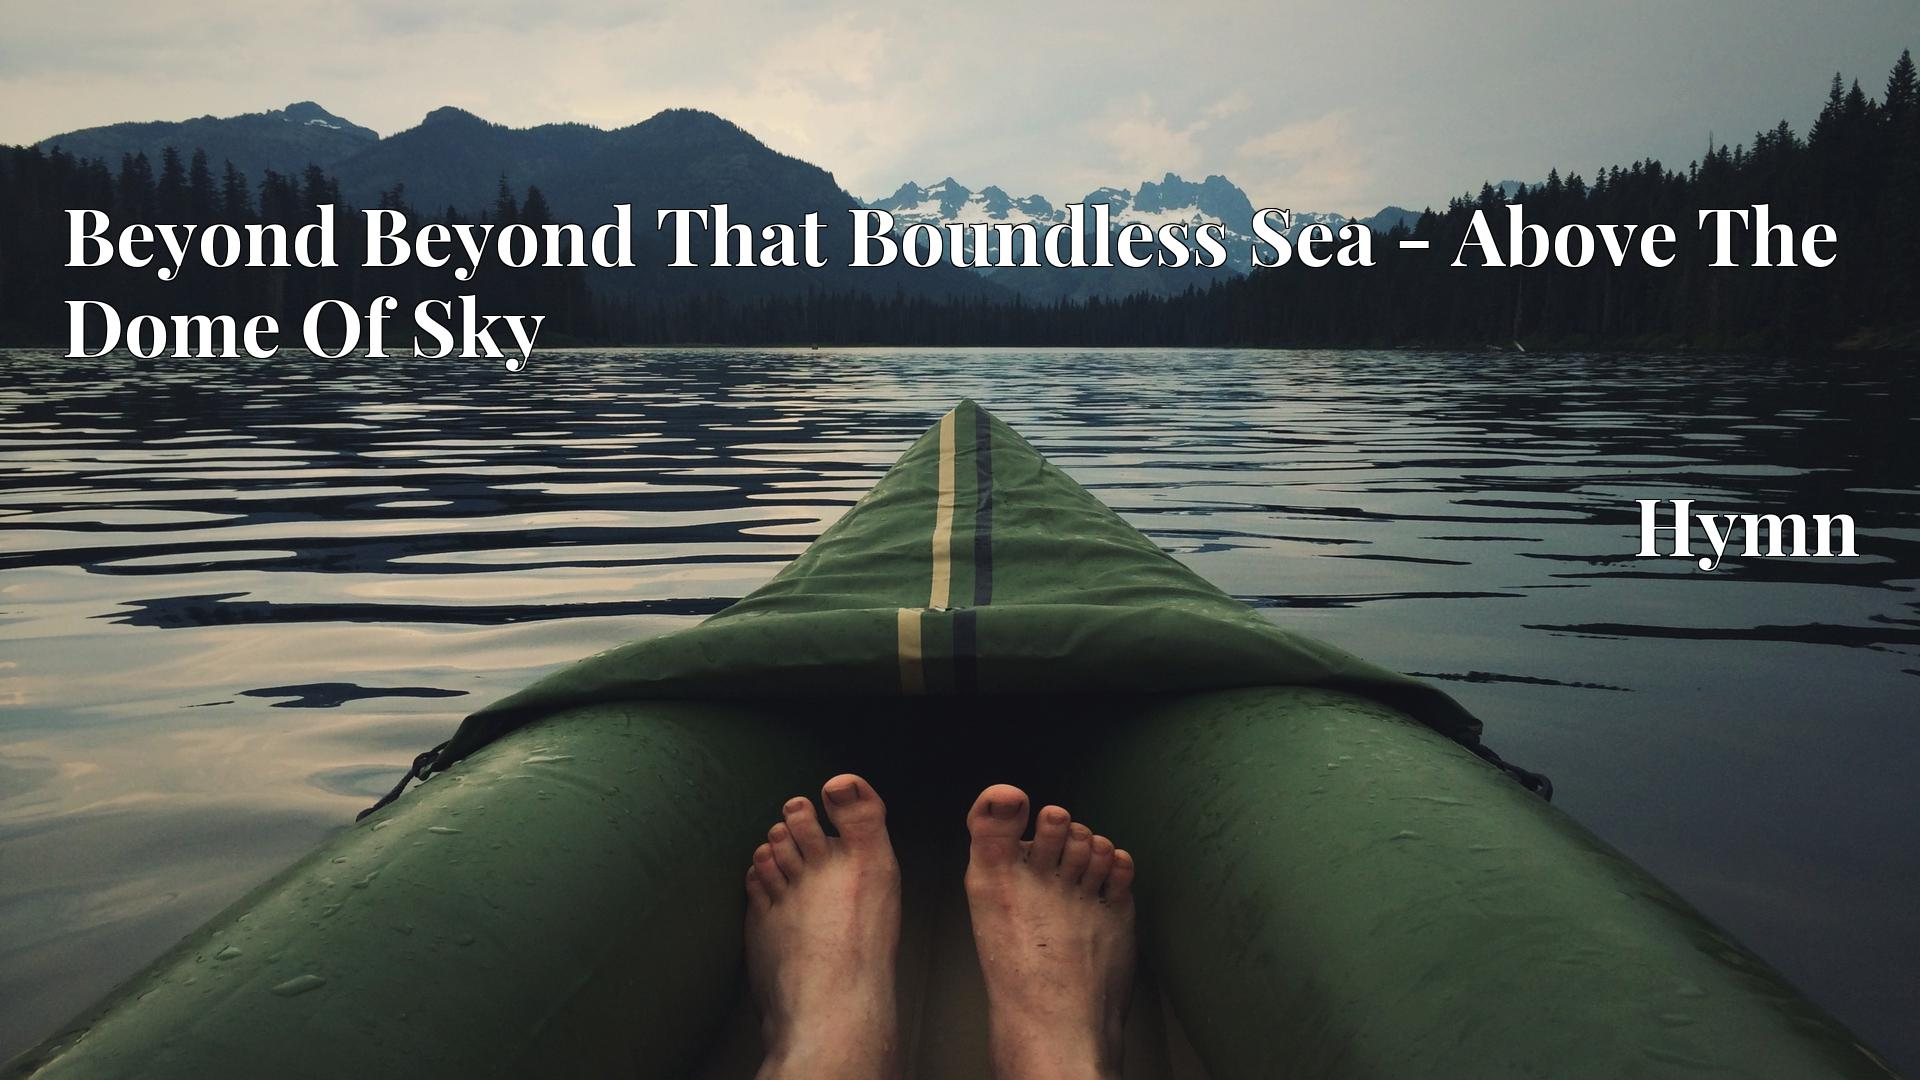 Beyond Beyond That Boundless Sea - Above The Dome Of Sky - Hymn